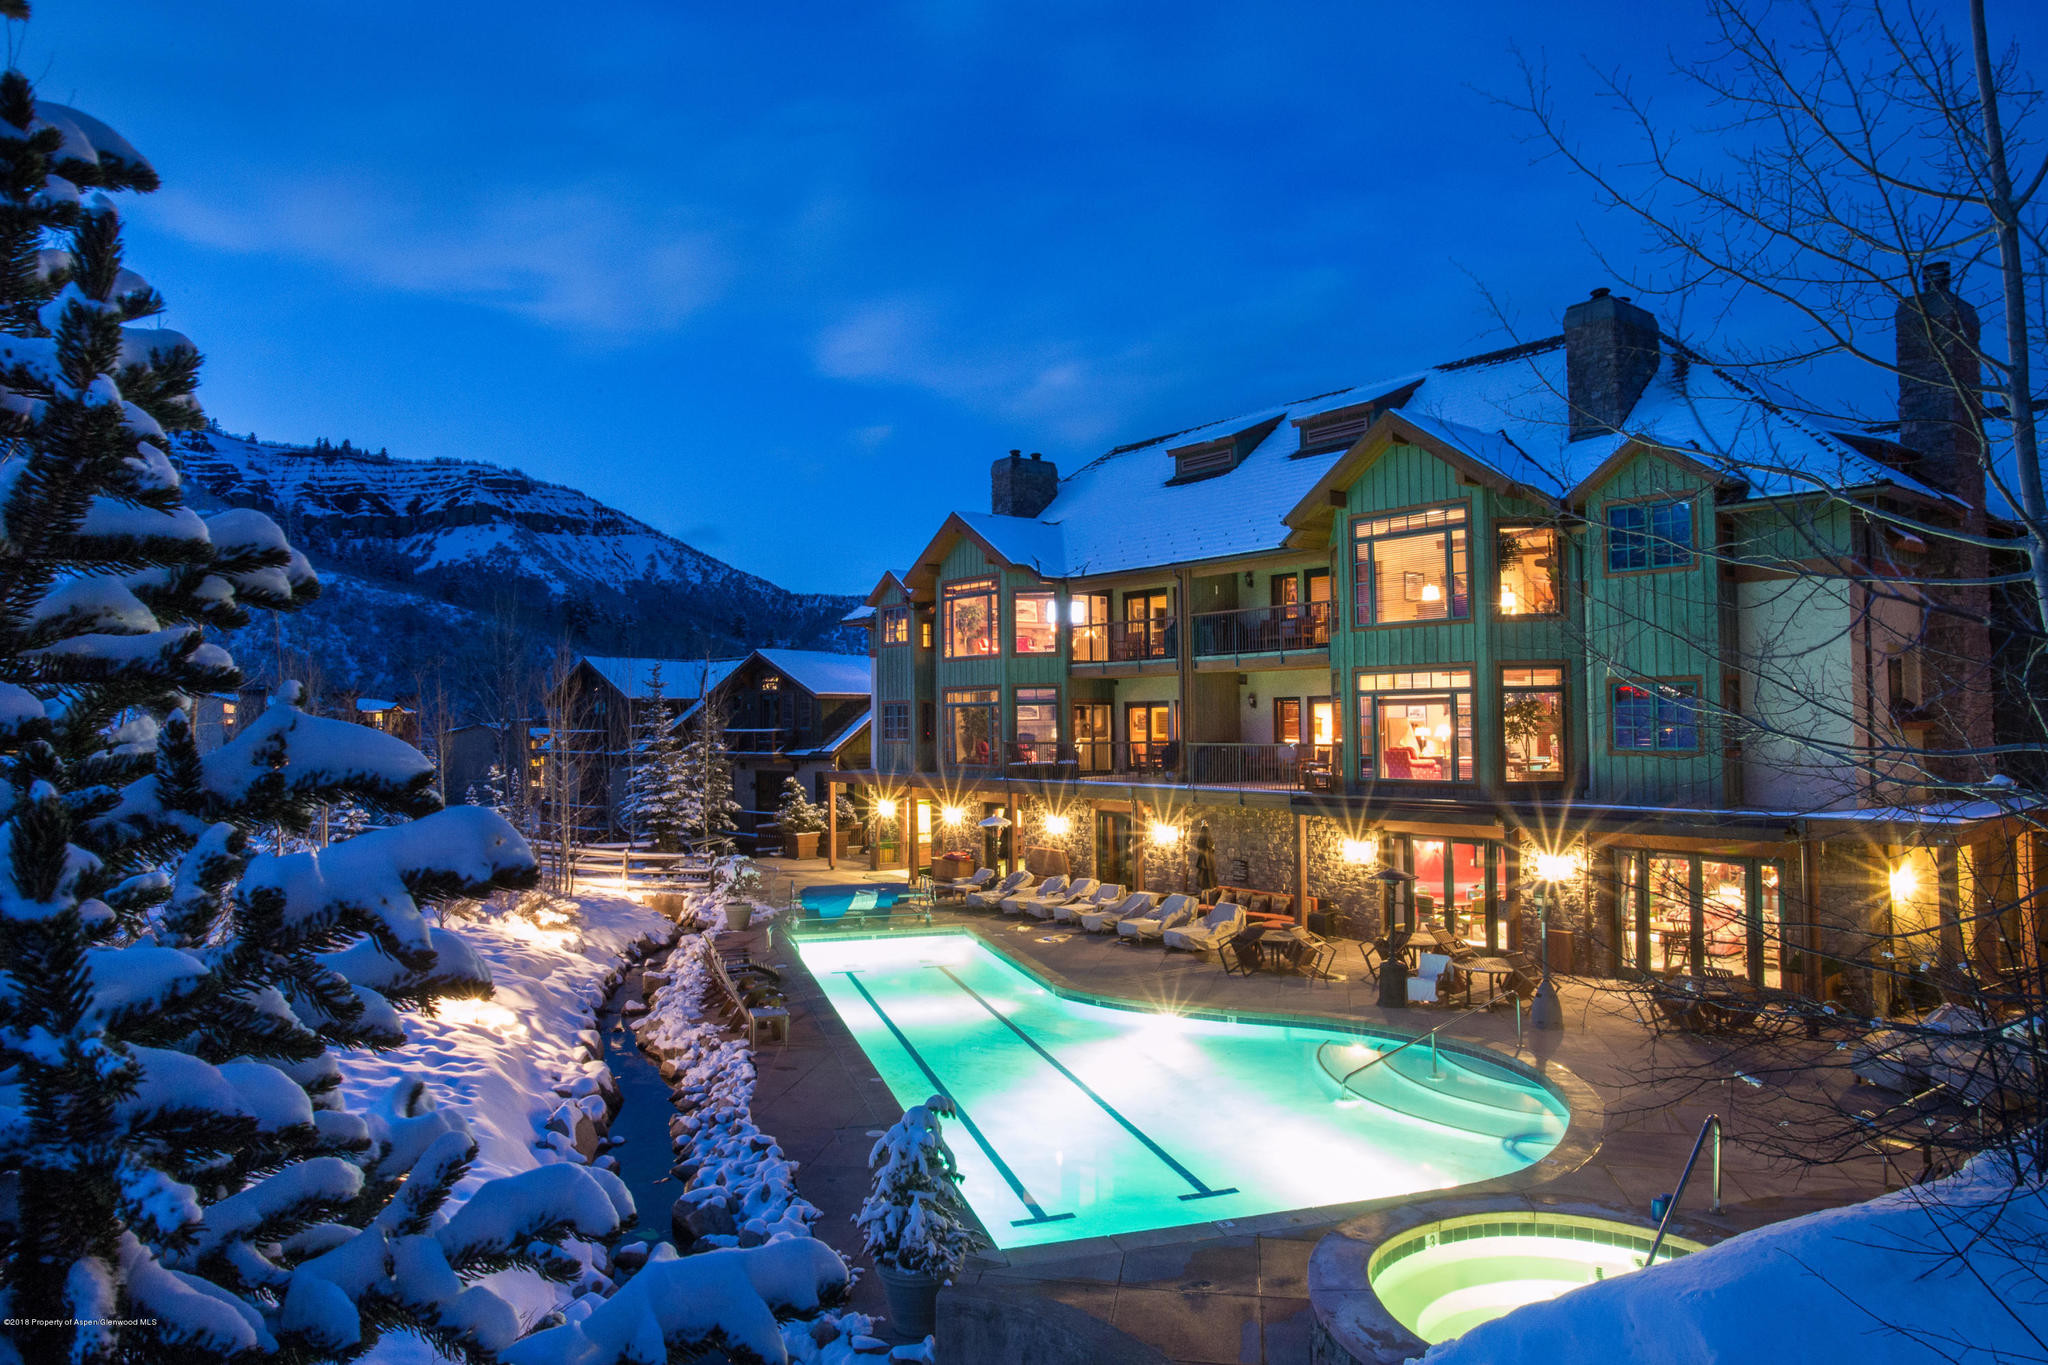 Condo In Timbers Club At Snowmass